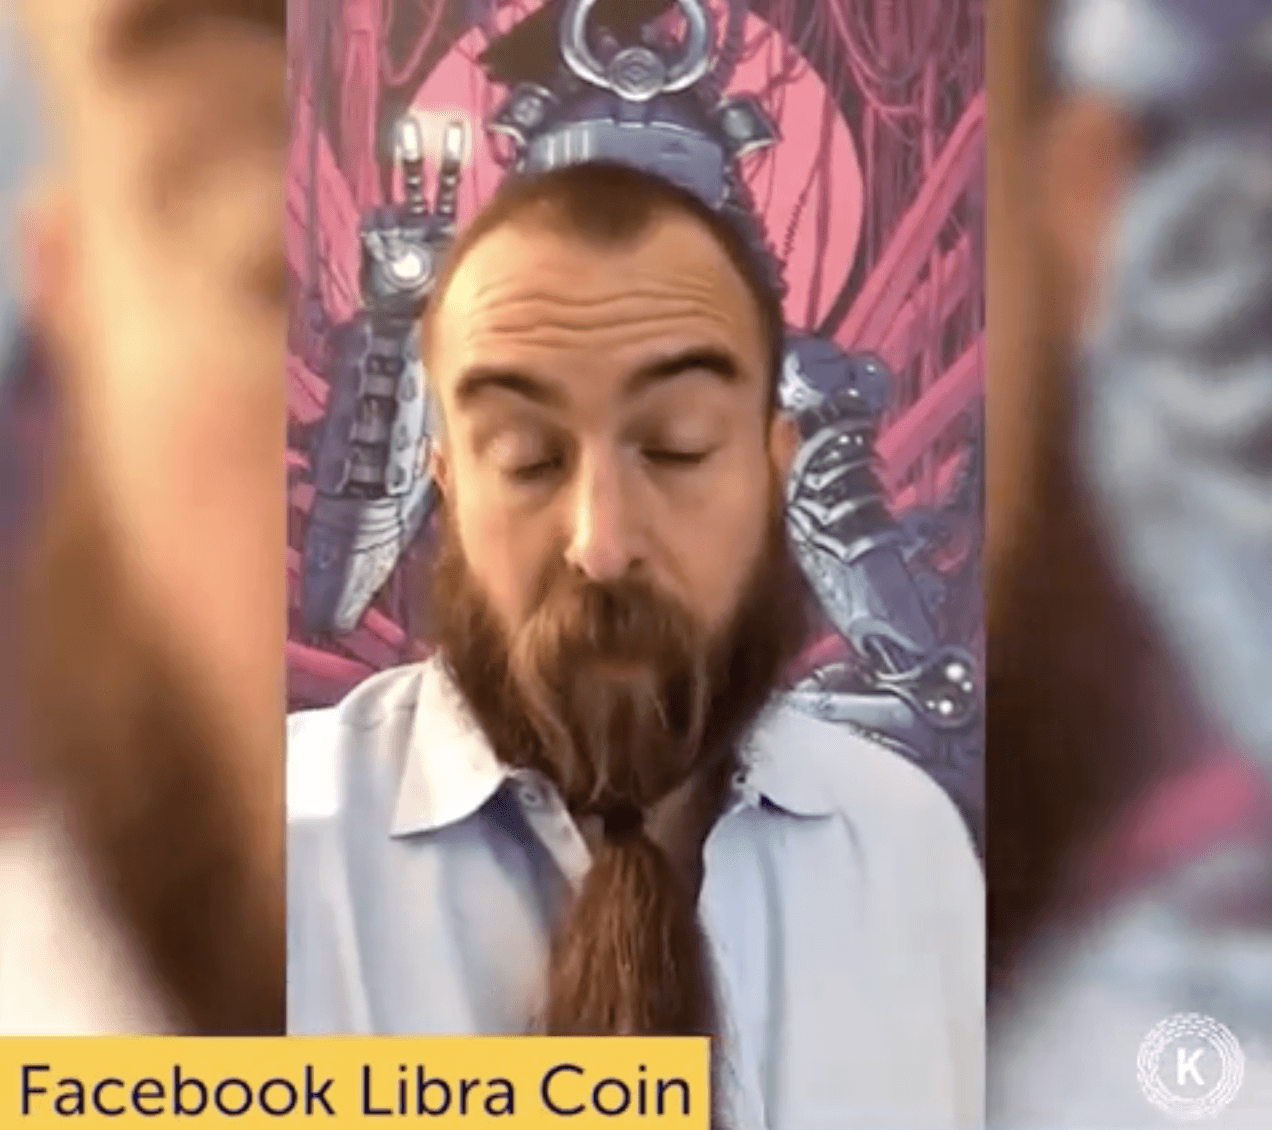 What's up with Facebook's Libra coin?